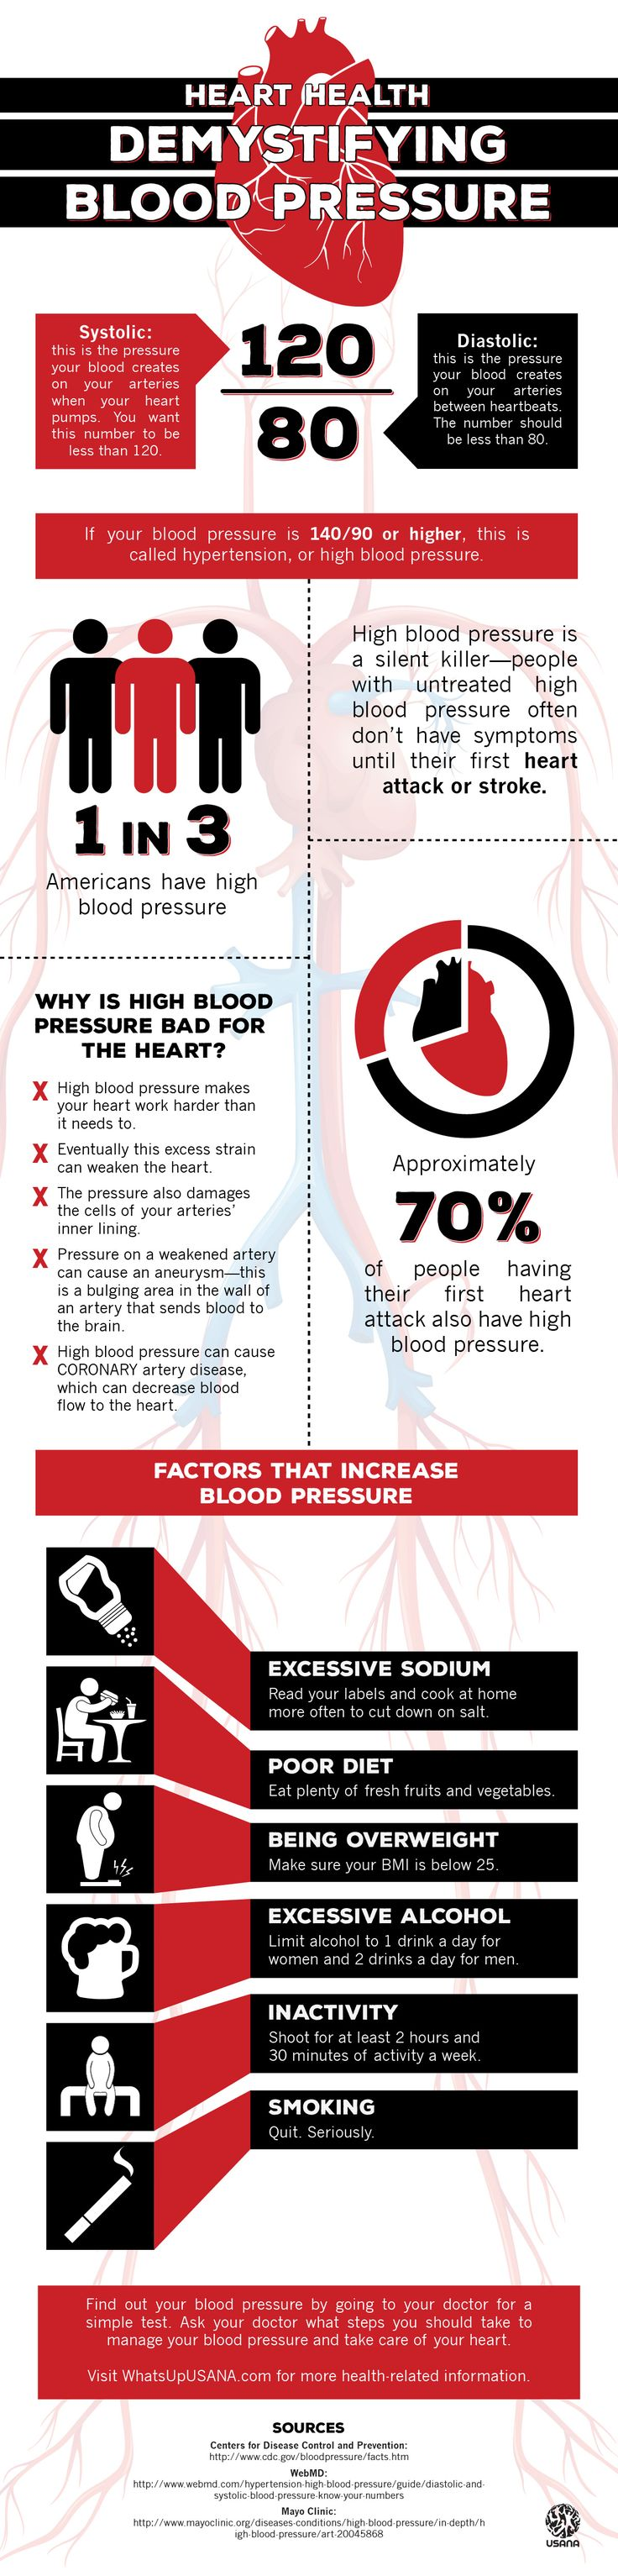 Demystifying Blood Pressure: High Blood Pressure is a silent killer.  Most people don't realize they have it until their first heart attack or stroke.    Don't let this happen to yourself or a loved one.  Take care of your health today.  Visit http://www.livingwellconnections for tips and healthy habits.